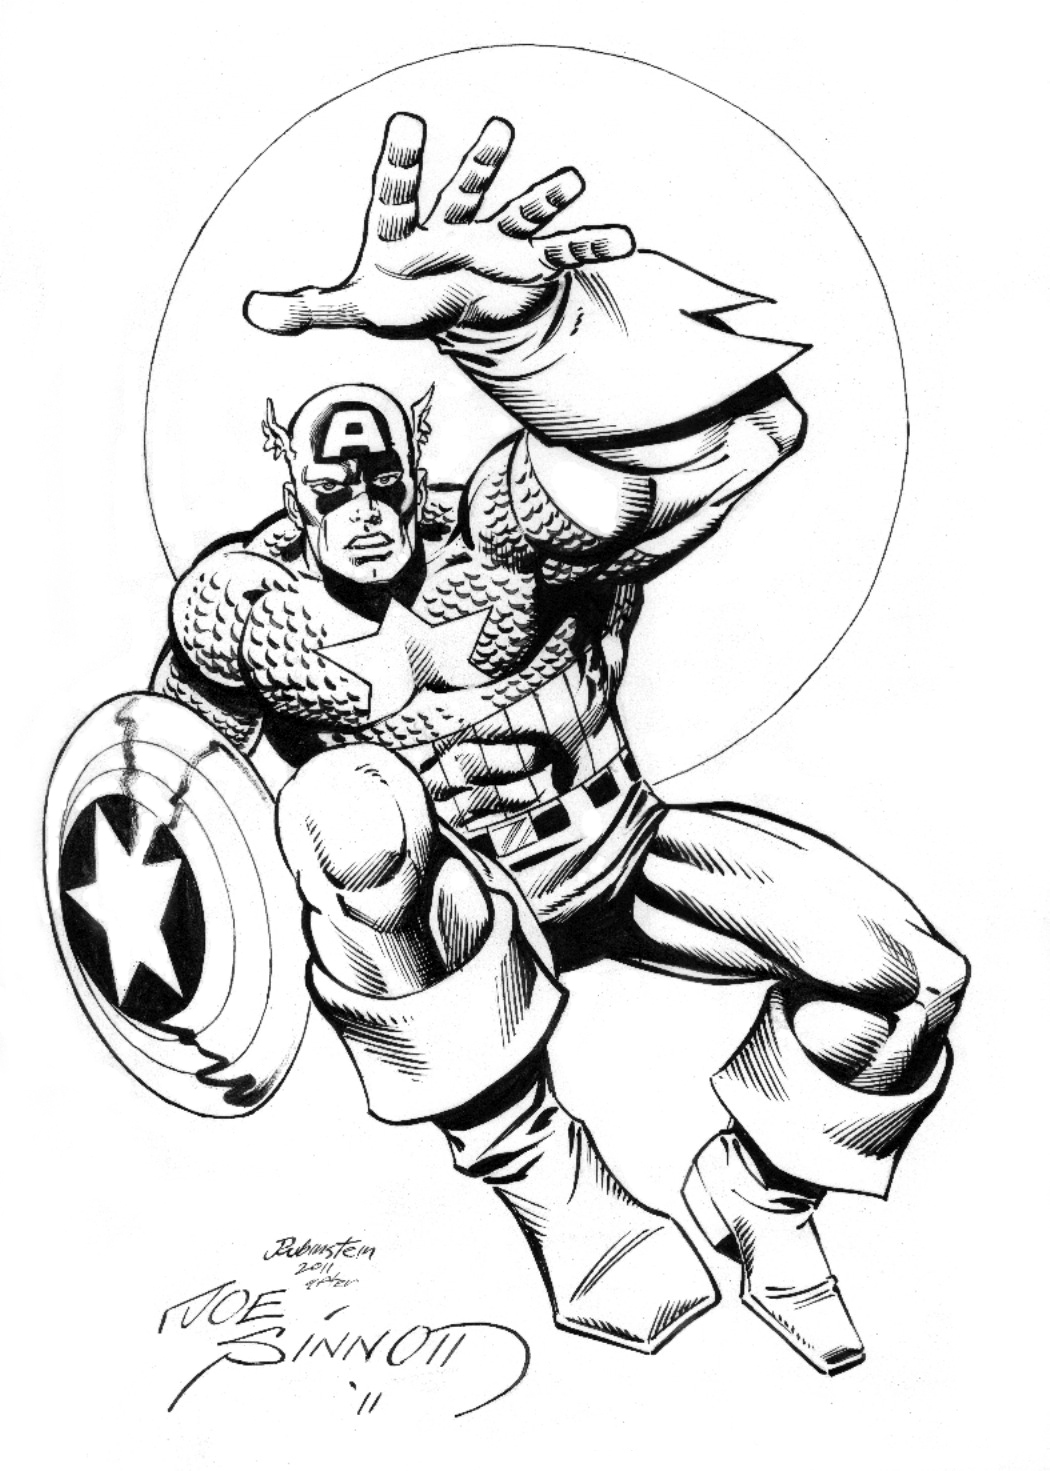 1050x1471 Inkwell Awards The Joe Sinnott Inking Challenge Continues!